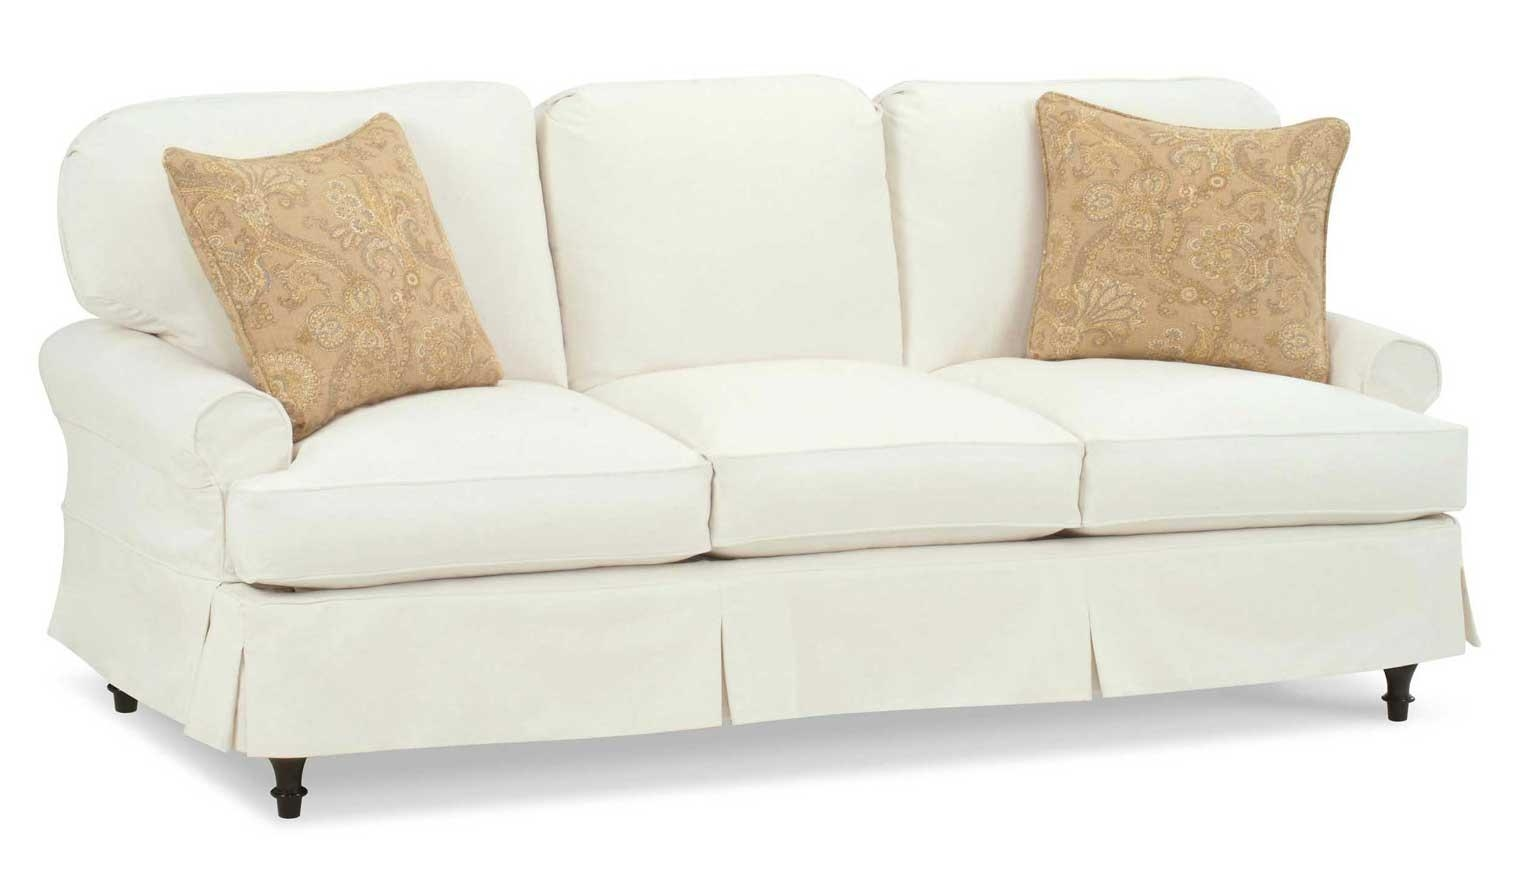 Farmhouse And Country Furniture | Cottage Home® Intended For Country Cottage Sofas And Chairs (Image 16 of 20)